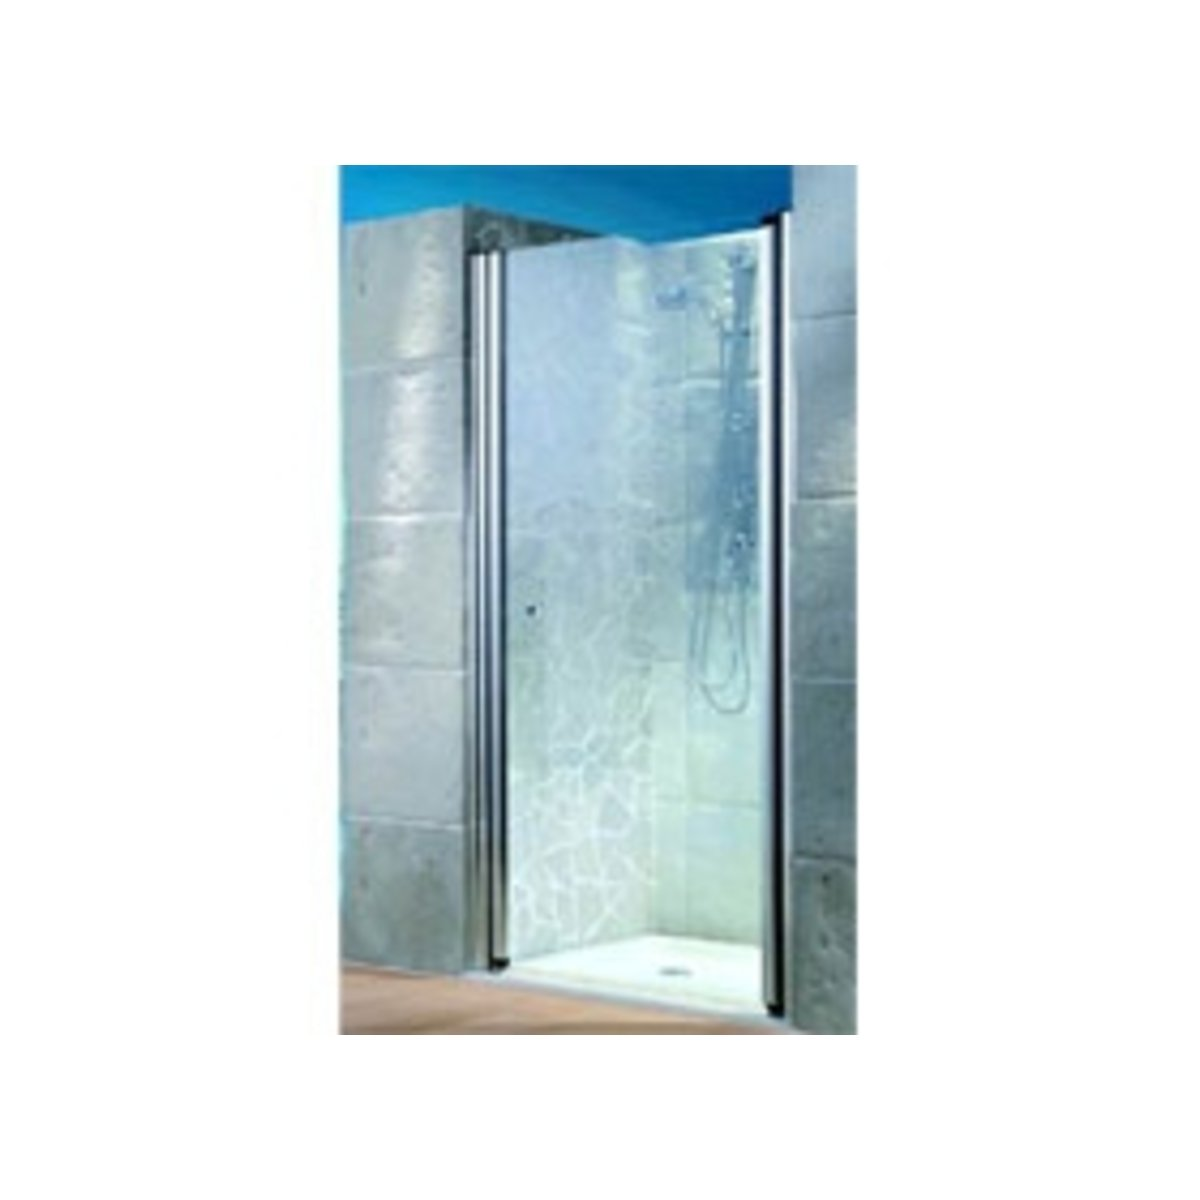 Saniclass dd02 porte de douche 100x 200cm vitre for Porte jarretelle h m